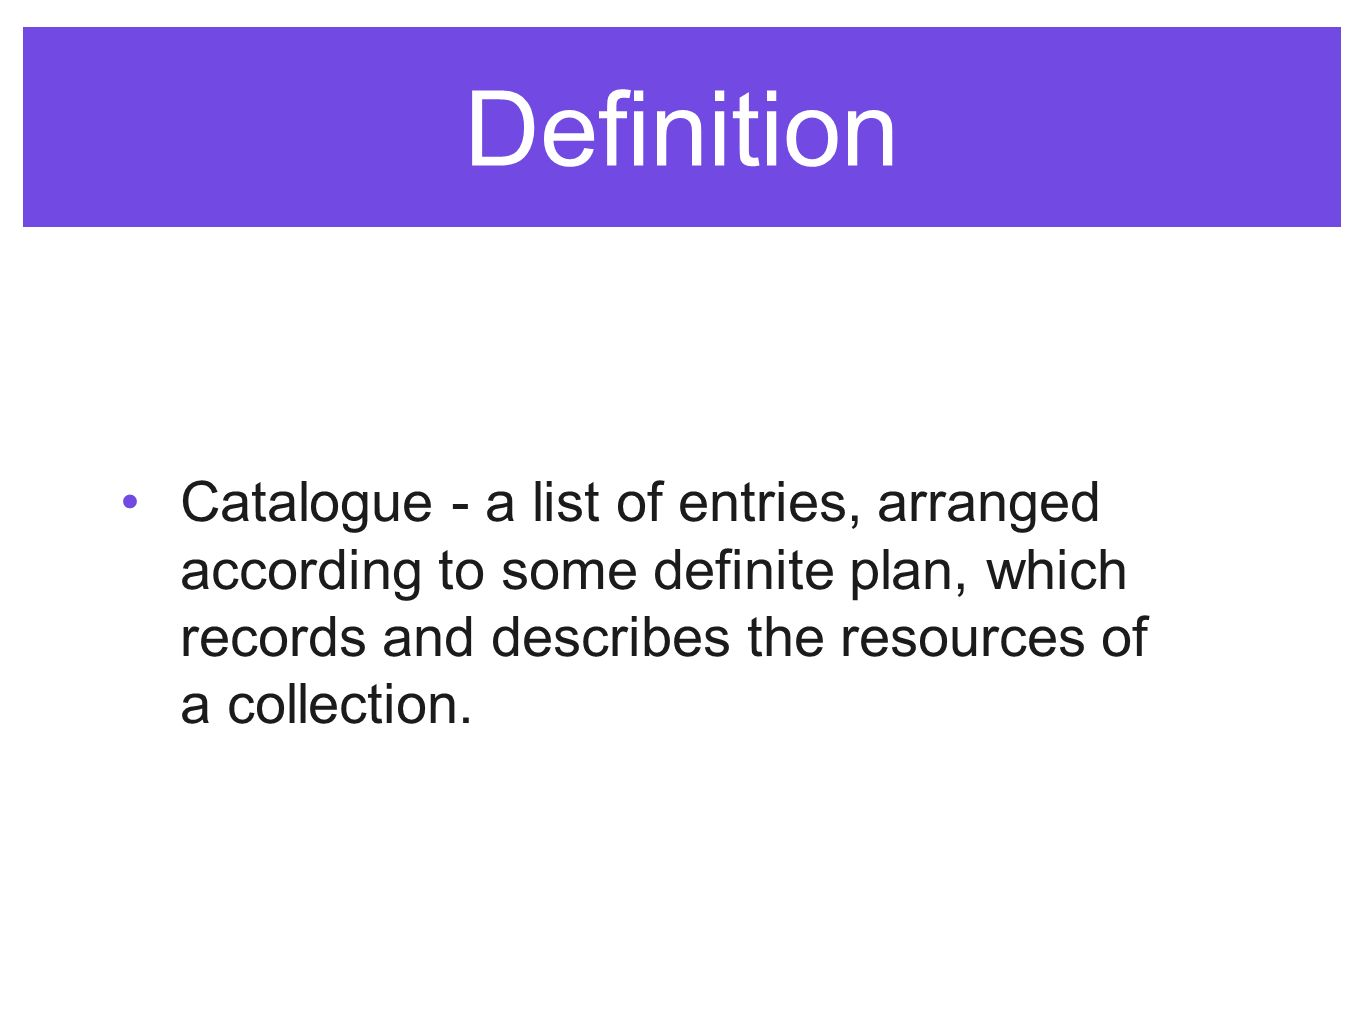 Qualities of a catalogue flexibility – it should be possible for records to be added or withdrawn easily accessibility – staff and users should be able to gain simultaneous access to the records reproducibility – it should be possible to reproduce the catalogue economically, conveniently and rapidly to allow wider access (online access) maintenance – should be relatively inexpensive to keep the catalogue up to date compatibility – should meet common standards, MARC 21, which allow its bibliographic records to be interchanged with other systems (local, national or international)